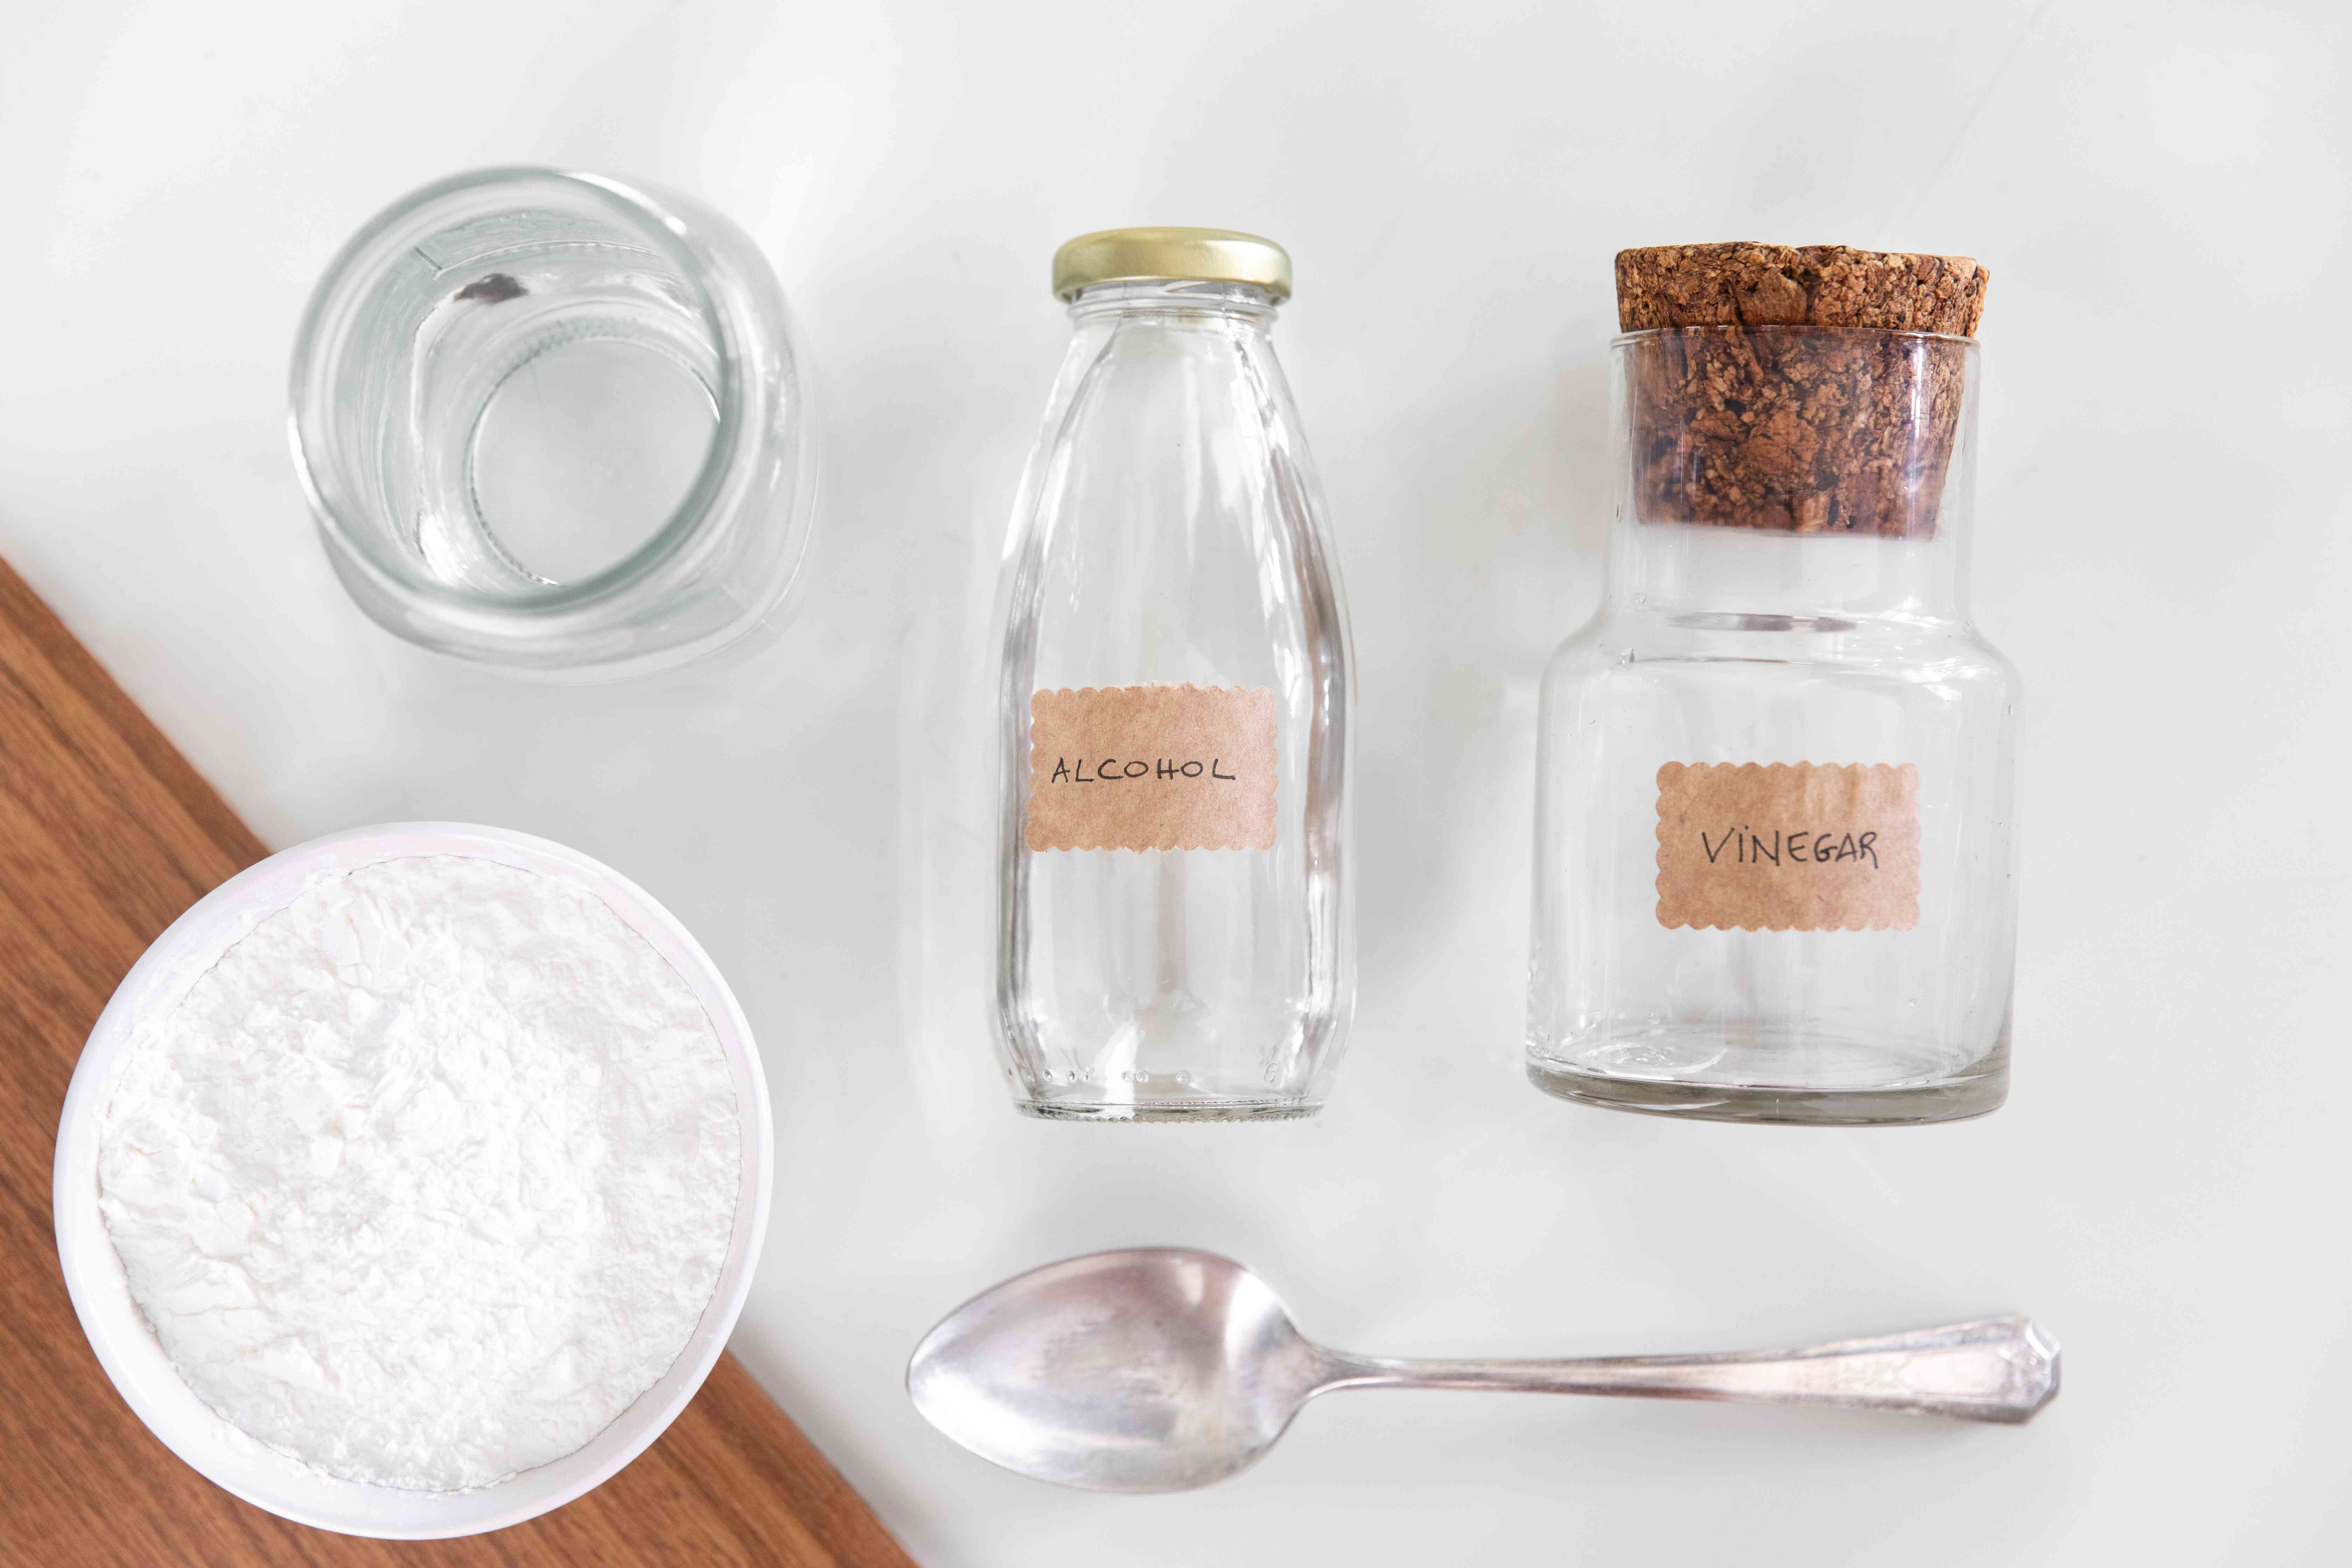 ingredients for making glass cleaner